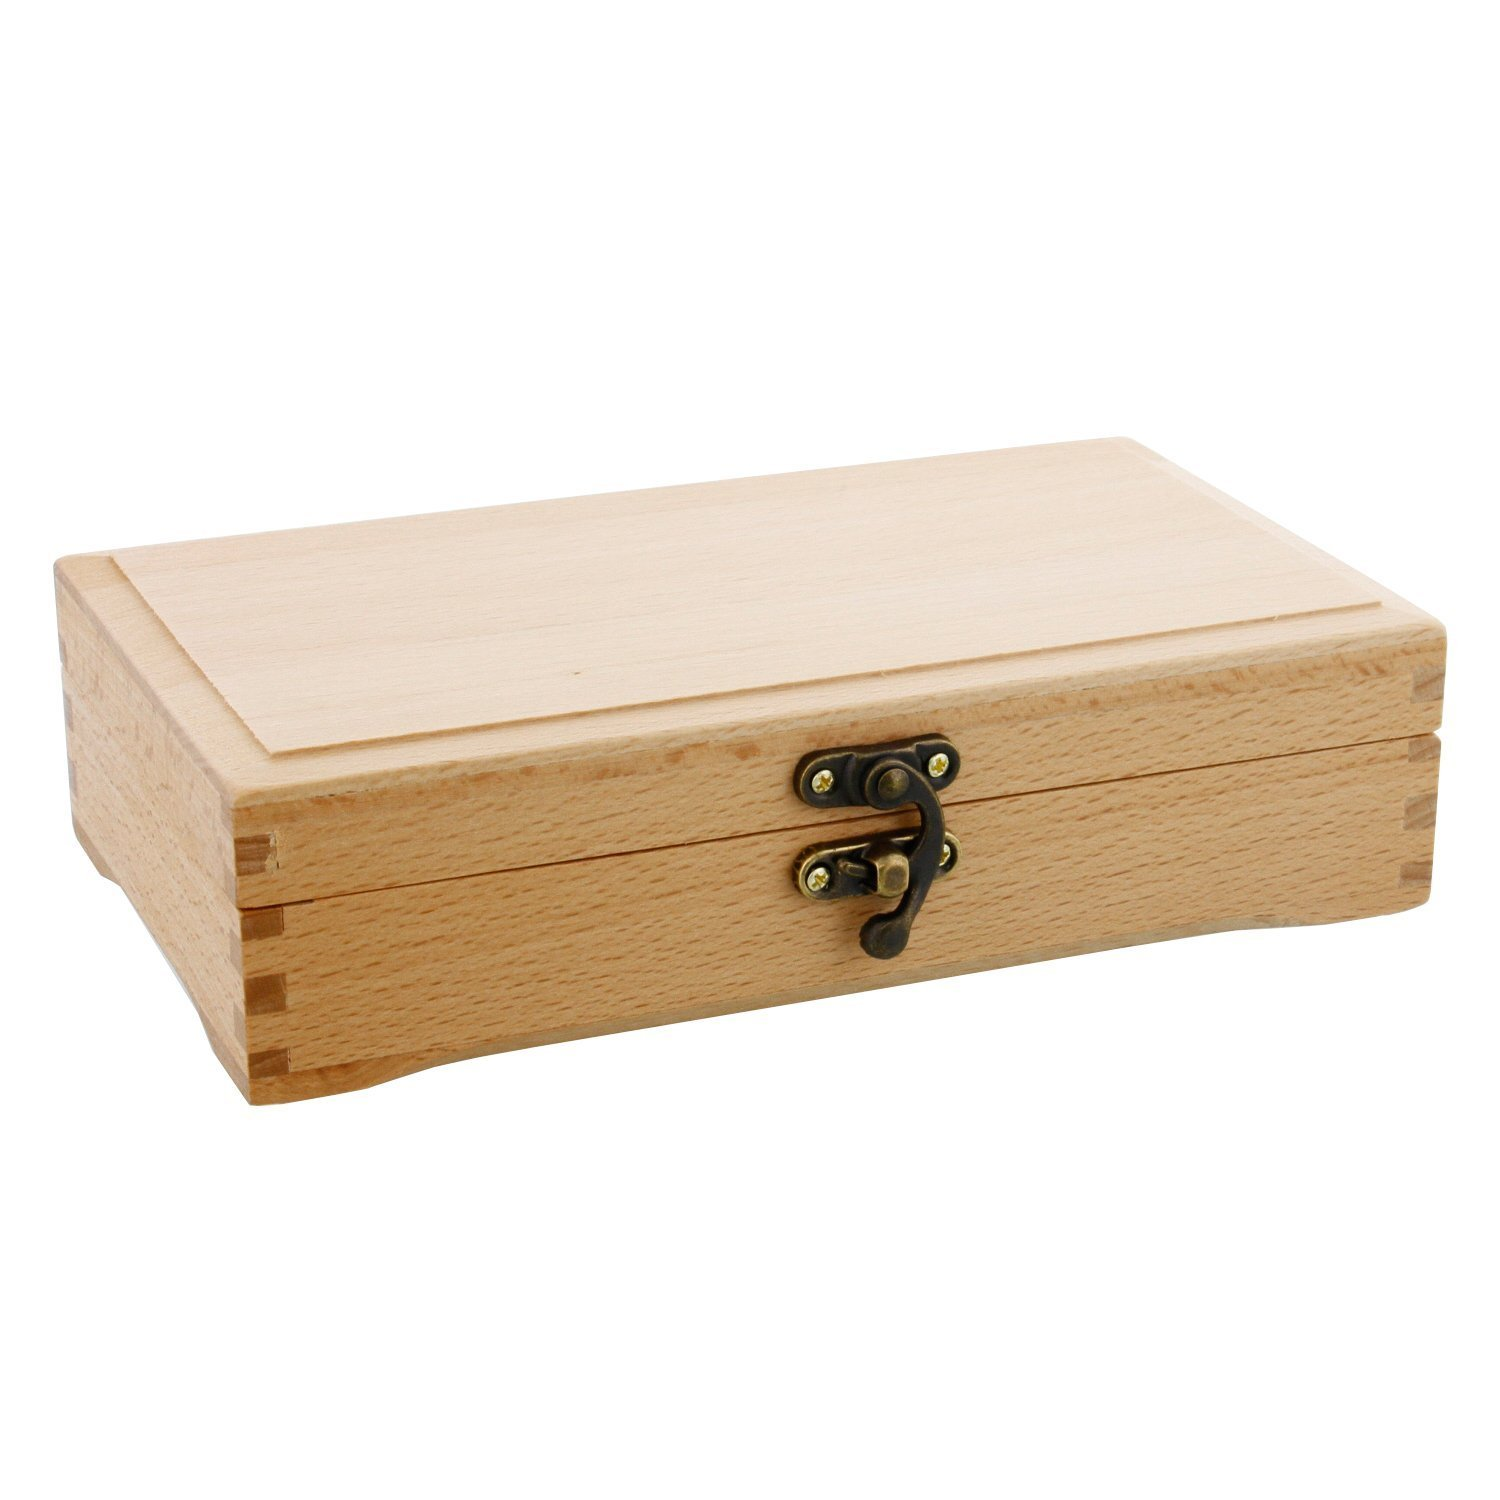 Wood Hinged Box, Artist Pastel Pen Marker and Supplies Storage Box Looneng 4336937549